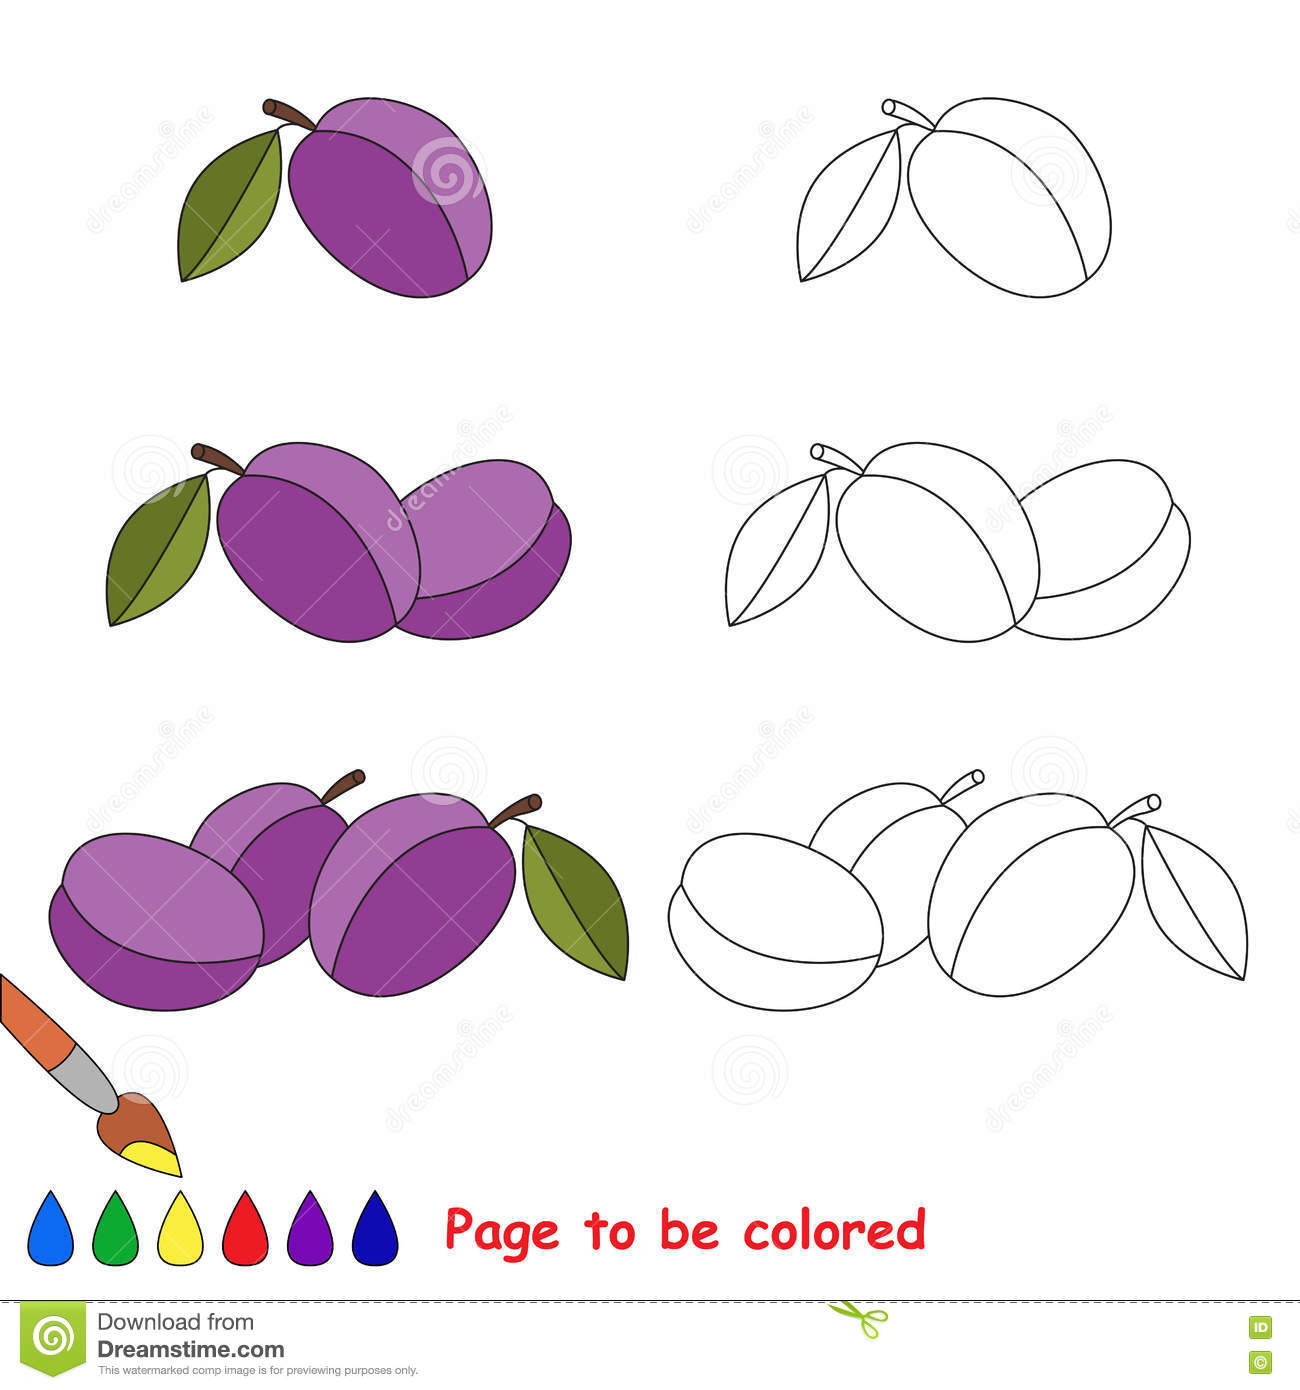 Plum clipart coloring, Plum coloring Transparent FREE for download ... | 1390x1300